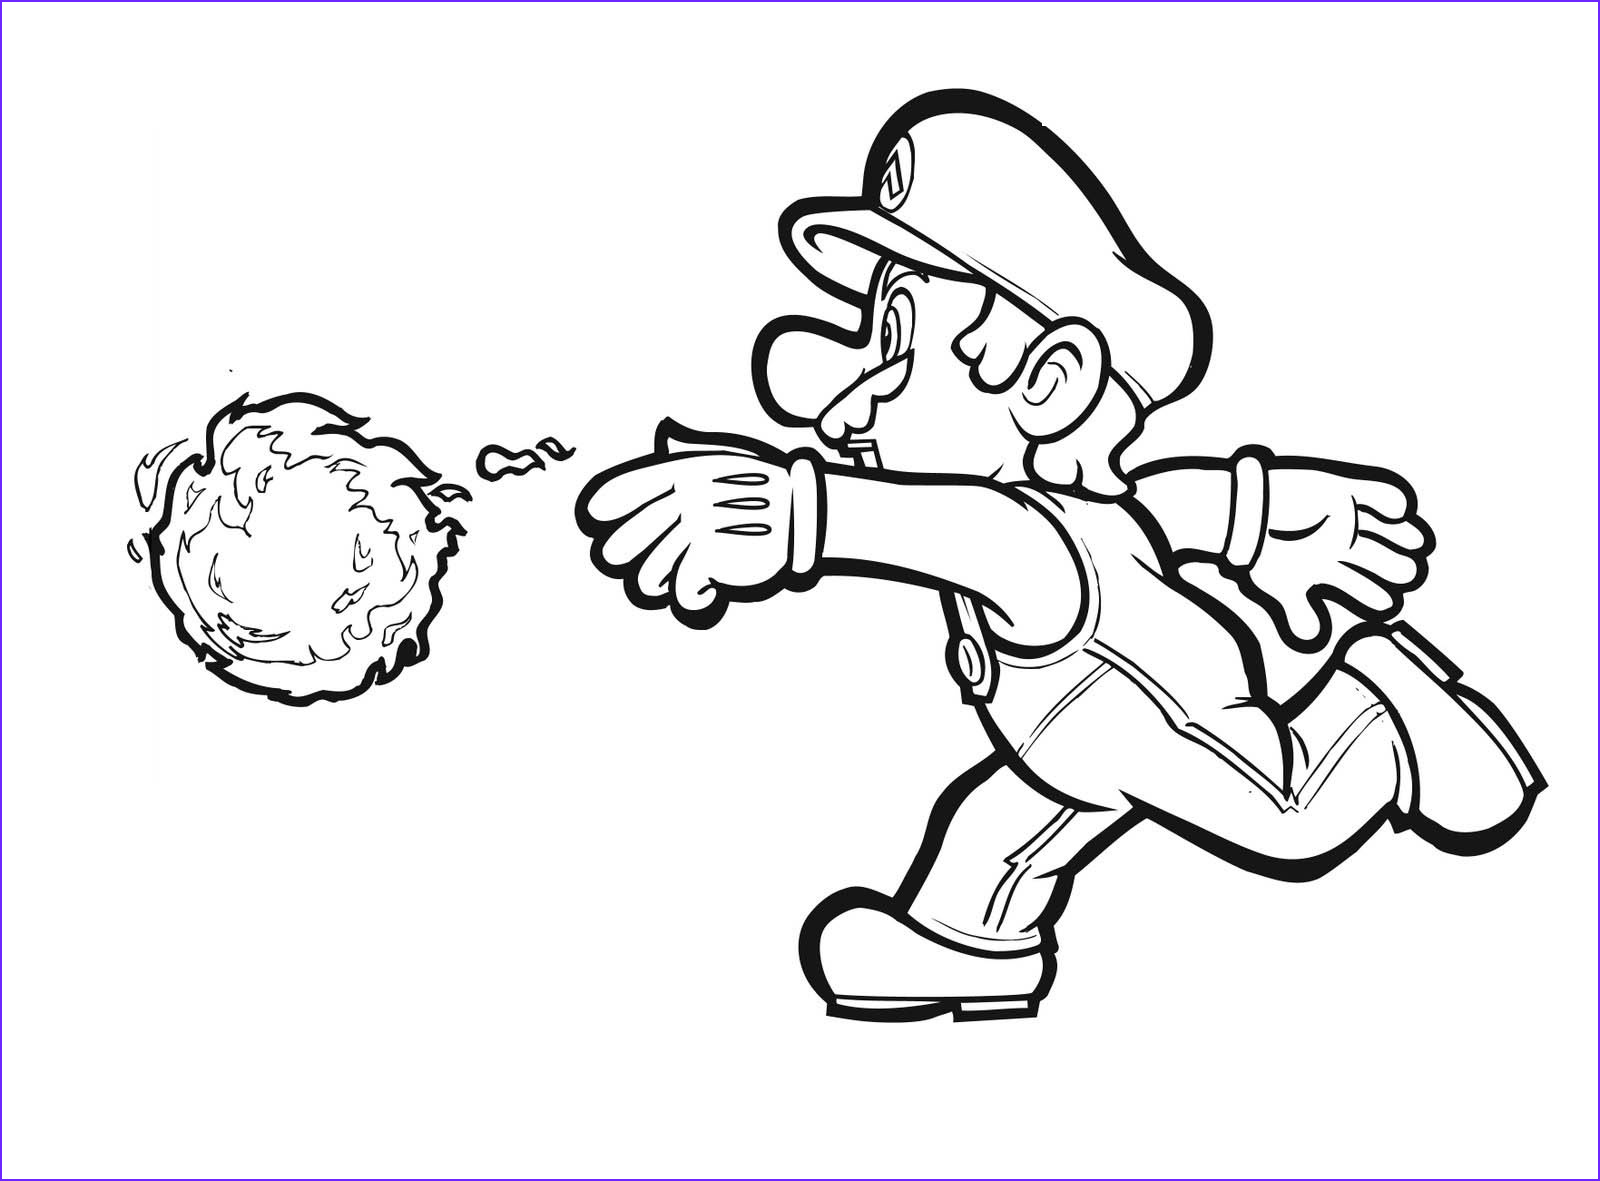 Mario Printable Coloring Page New Images 9 Free Mario Bros Coloring Pages for Kids Disney